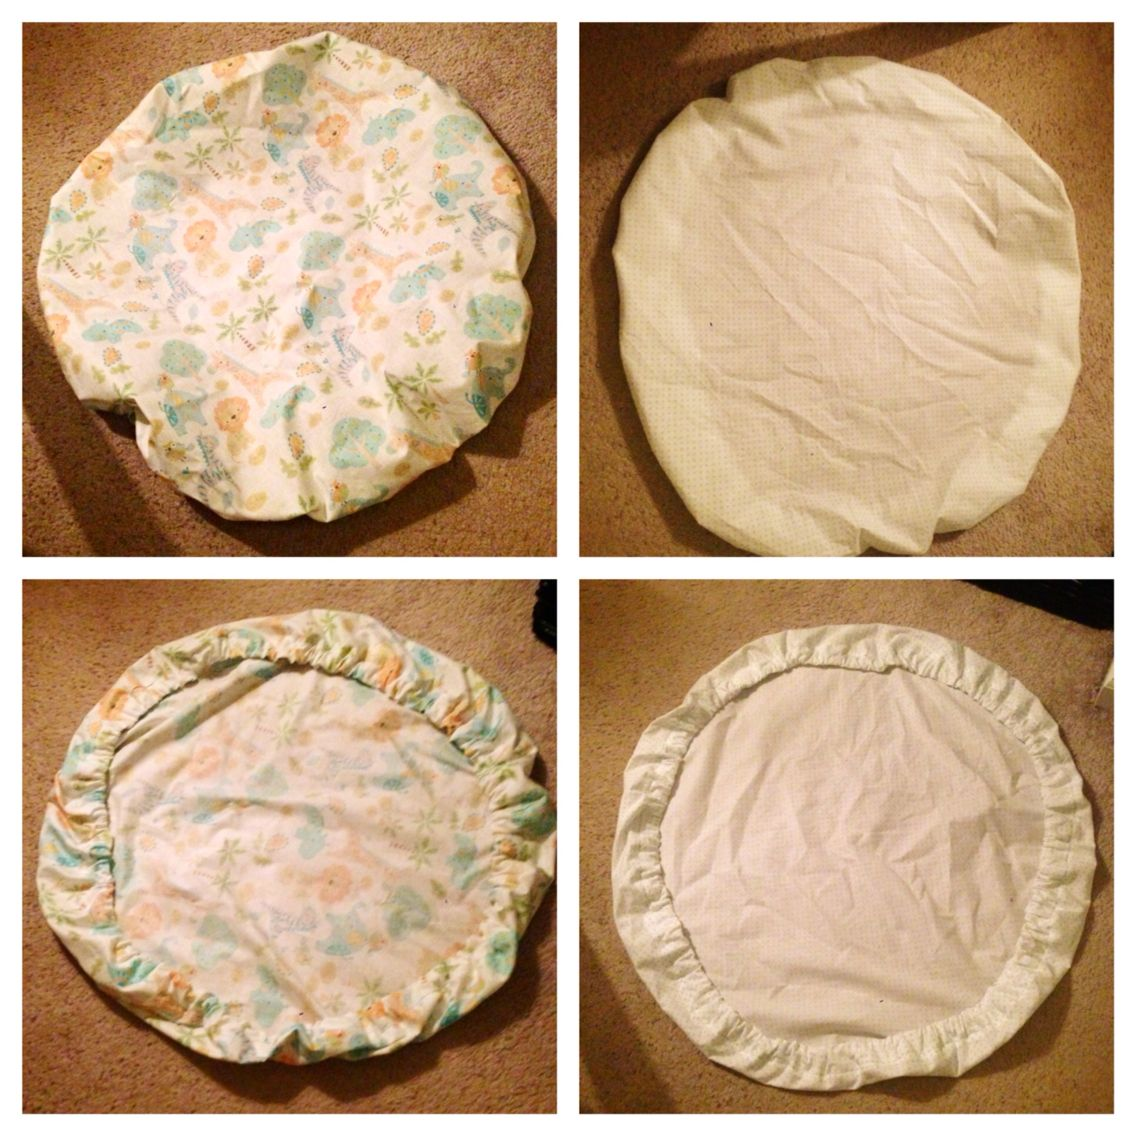 Diy Round Bassinet Fitted Sheet Could Not Find Any Cute Ones Online So I Bought Fabric And Used This Tutorial To Make Baby Crib Diy Baby Cribs Round Bassinet